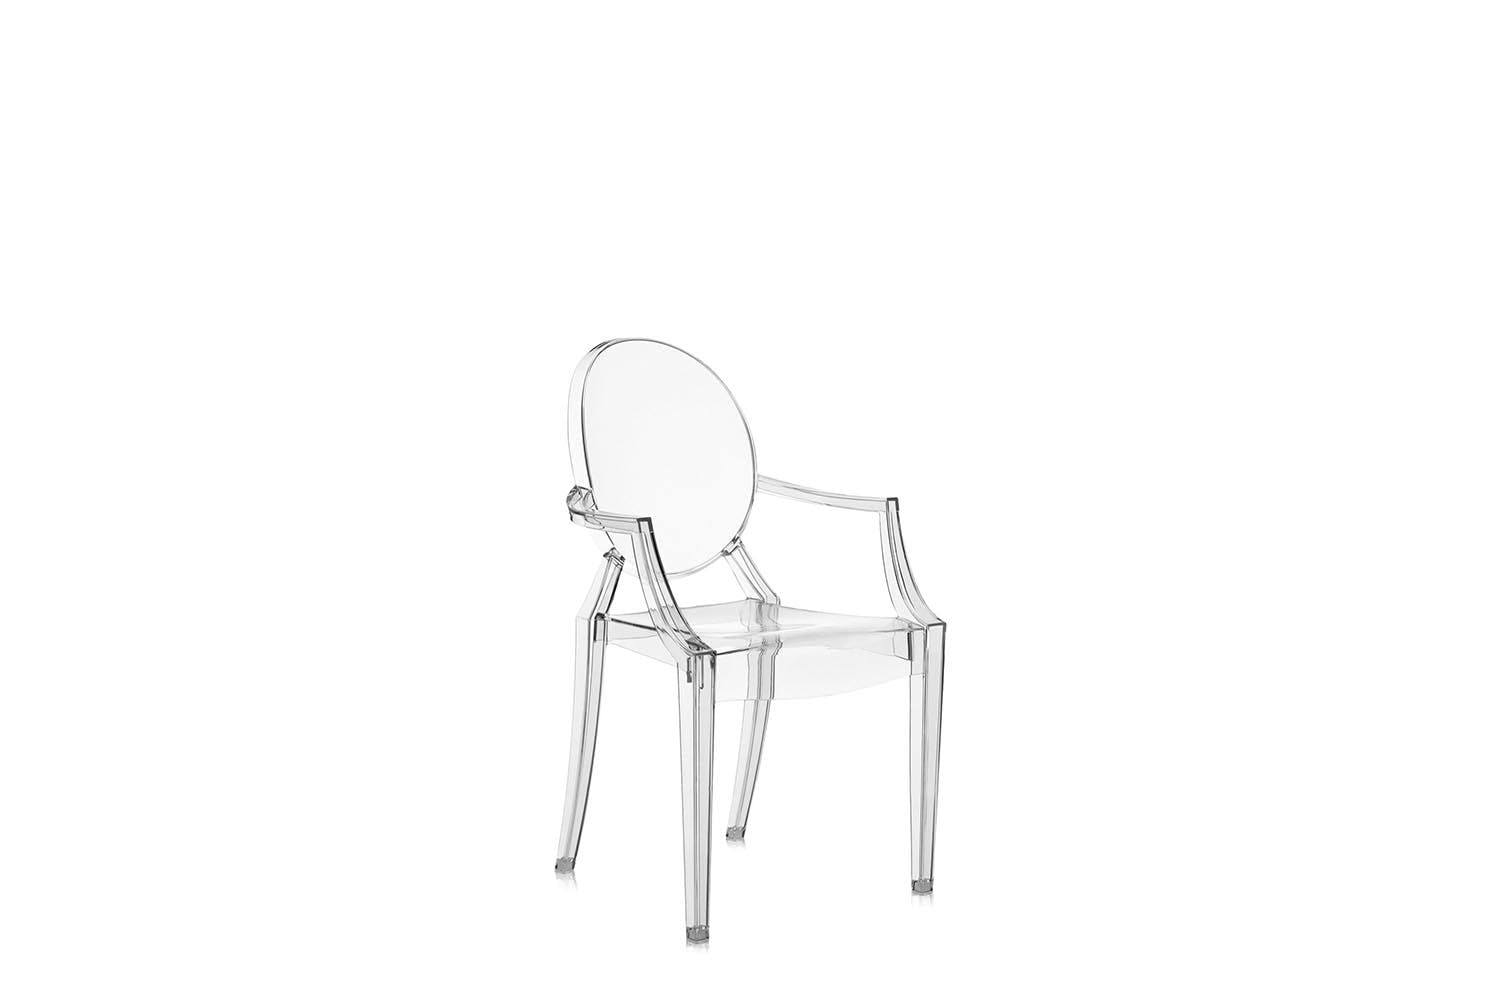 lou lou ghost chair with arms by philippe starck for kartell space